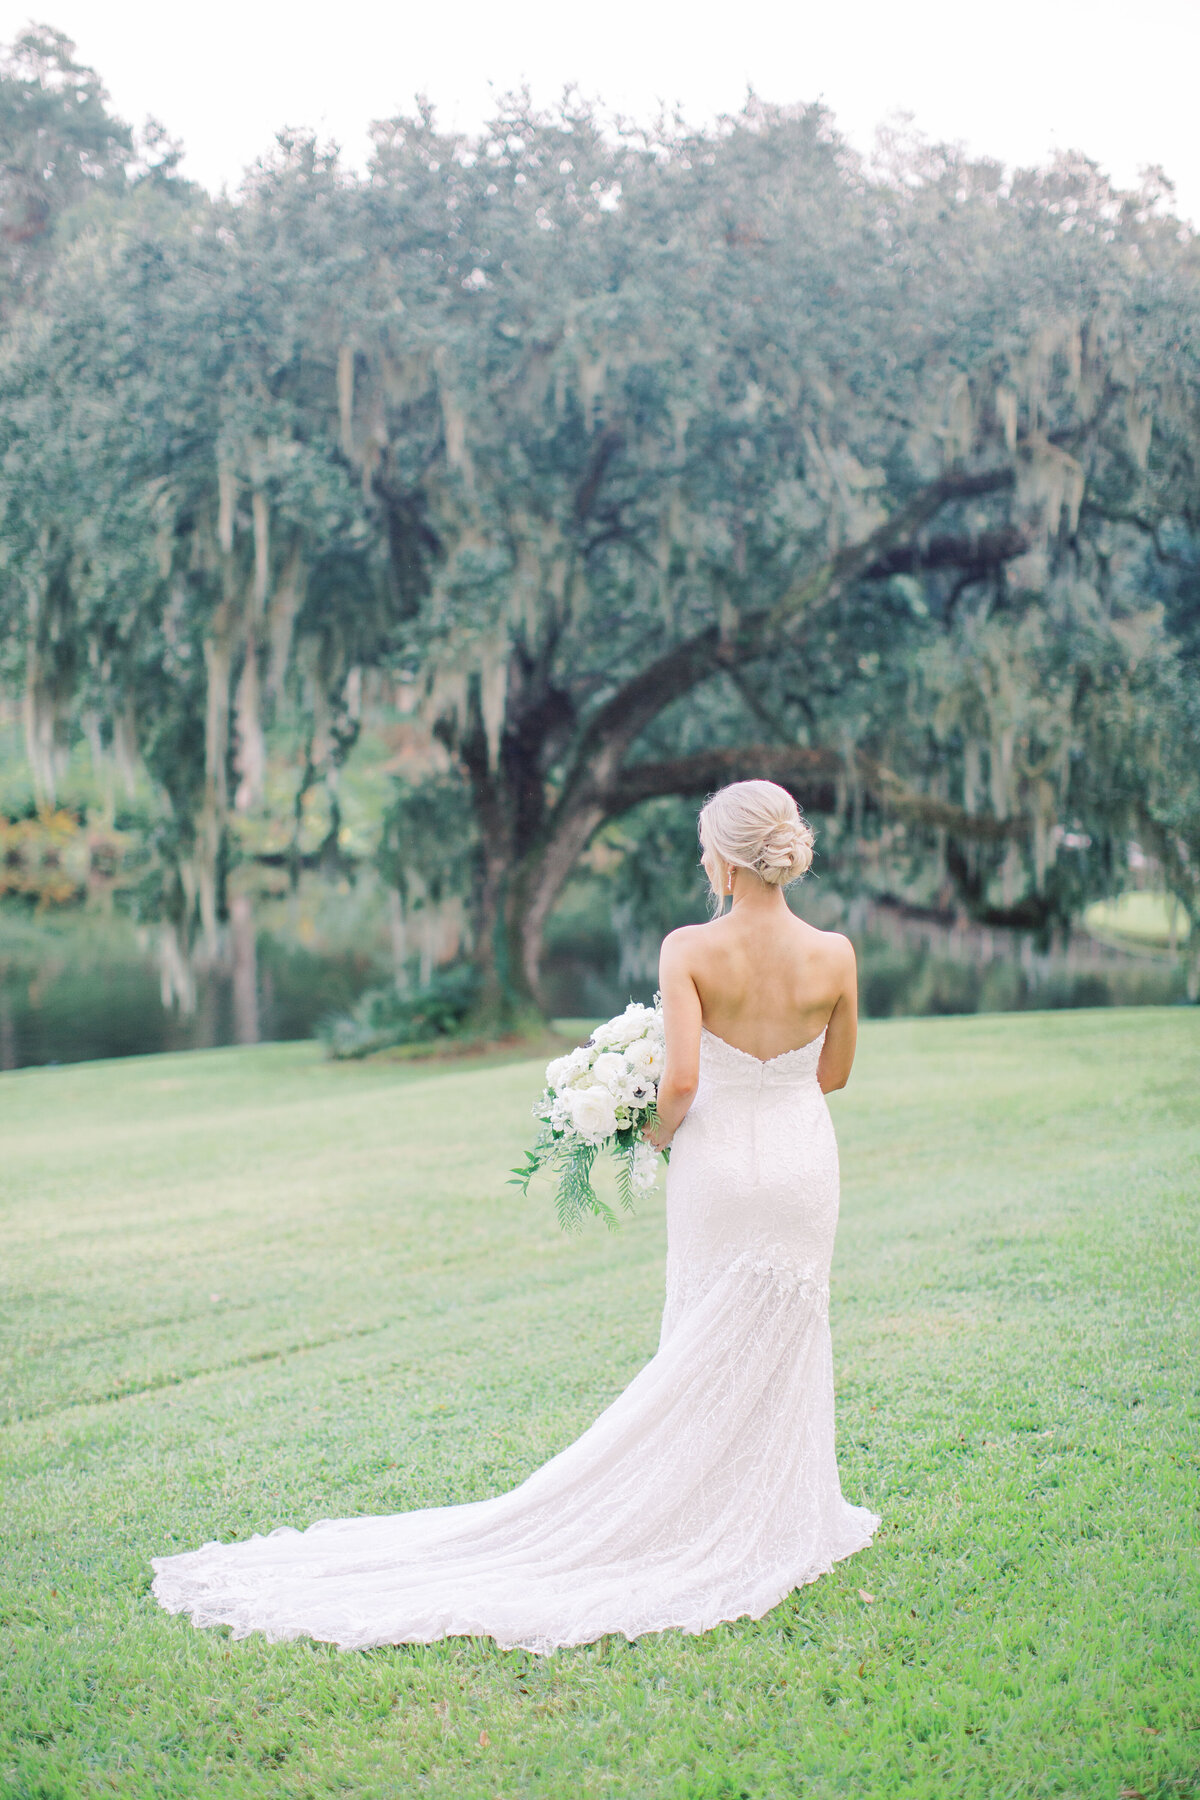 Melton_Wedding__Middleton_Place_Plantation_Charleston_South_Carolina_Jacksonville_Florida_Devon_Donnahoo_Photography__0282